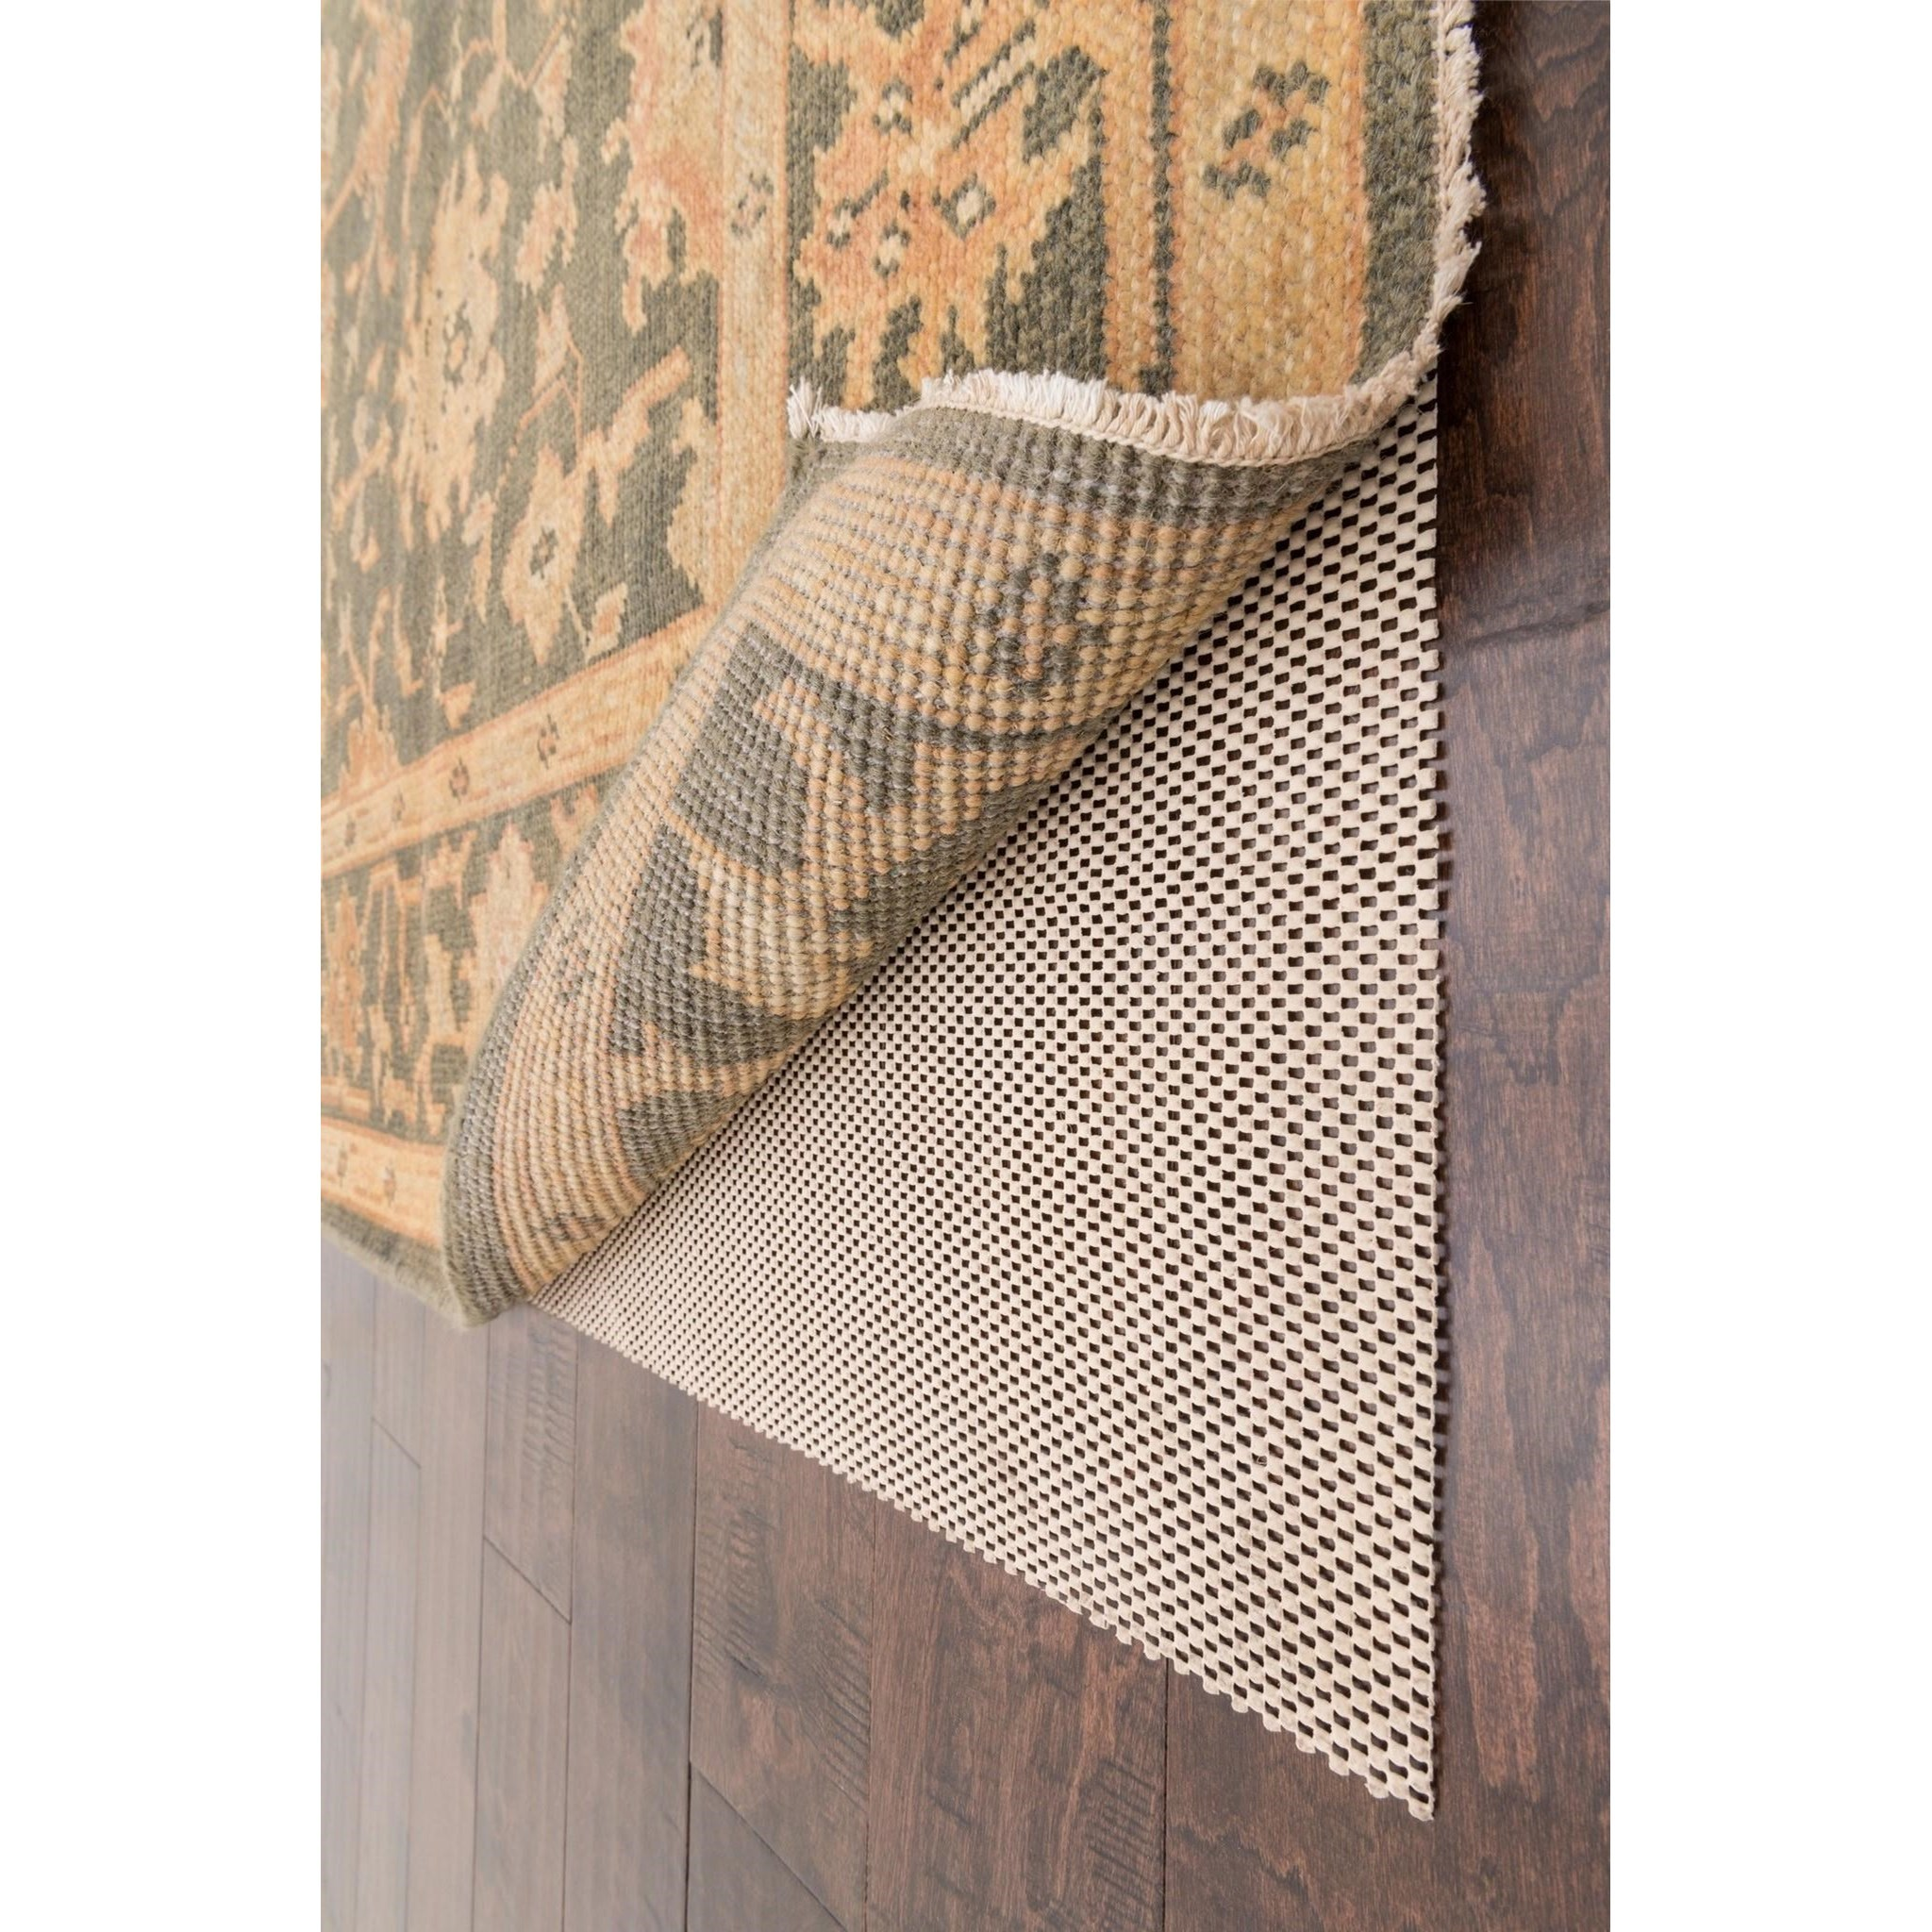 "Premium Grip Rug Pad 10'-0"" X 14'-0"" Rug by Loloi Rugs at Virginia Furniture Market"